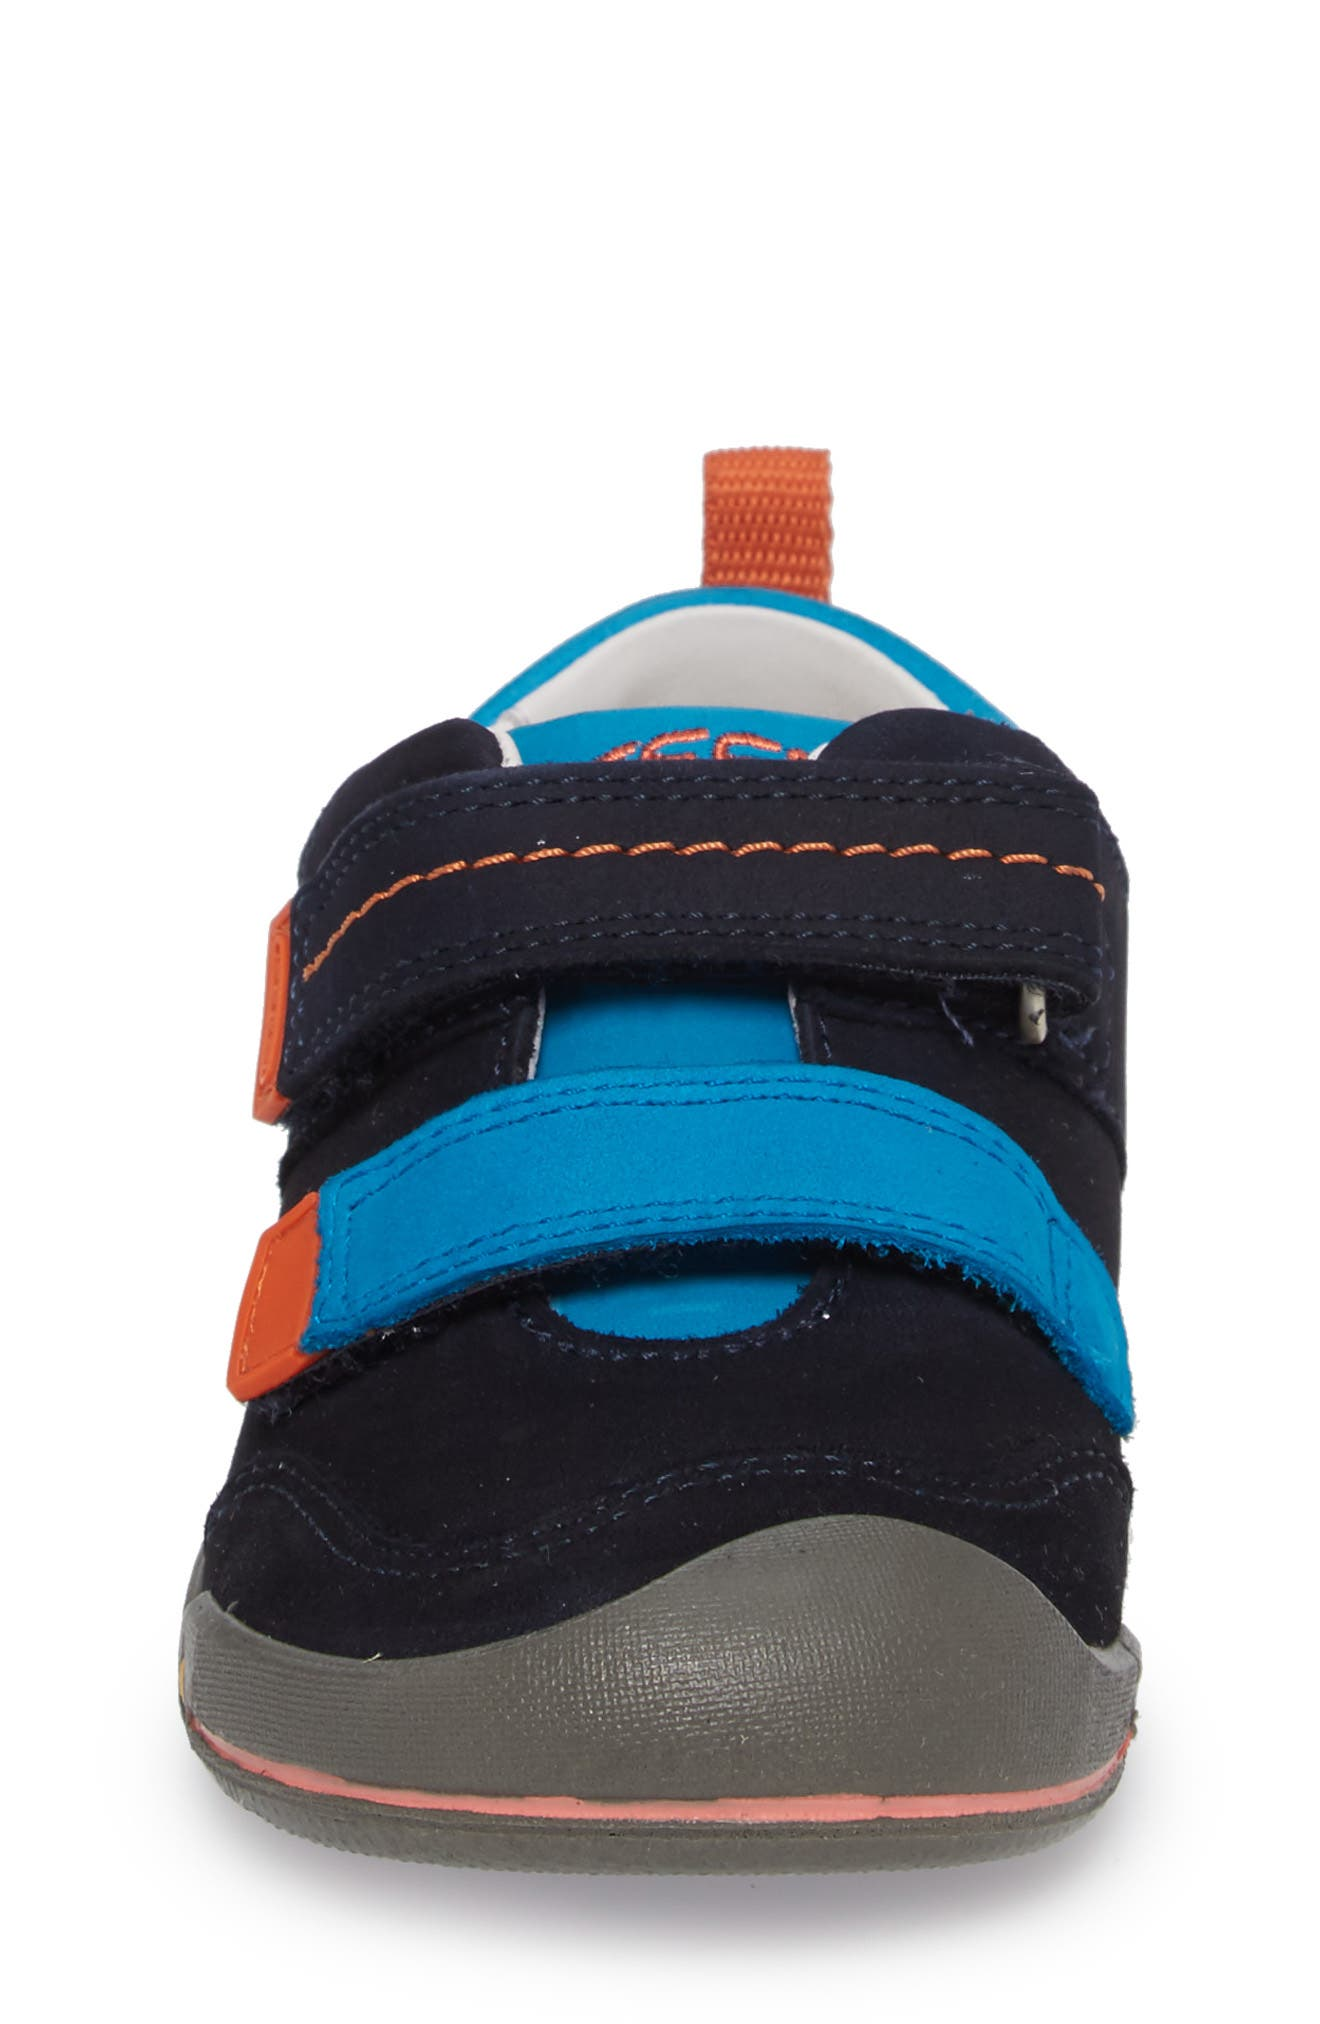 Sprout Double Strap Sneaker,                             Alternate thumbnail 4, color,                             Dress Blues/ Koi